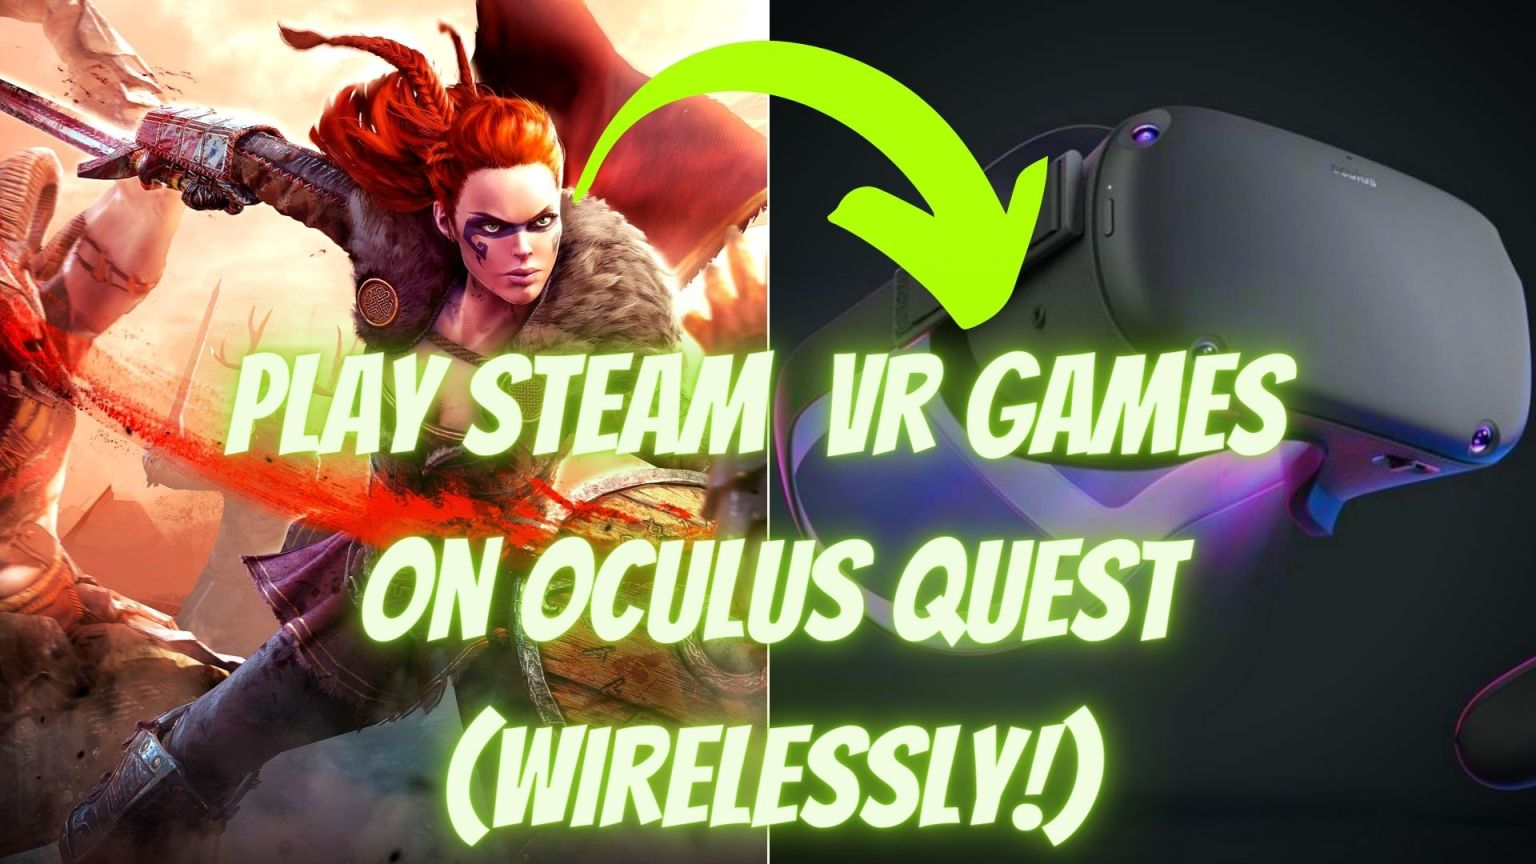 how to play Steam vr games on oculus quest wirelessly